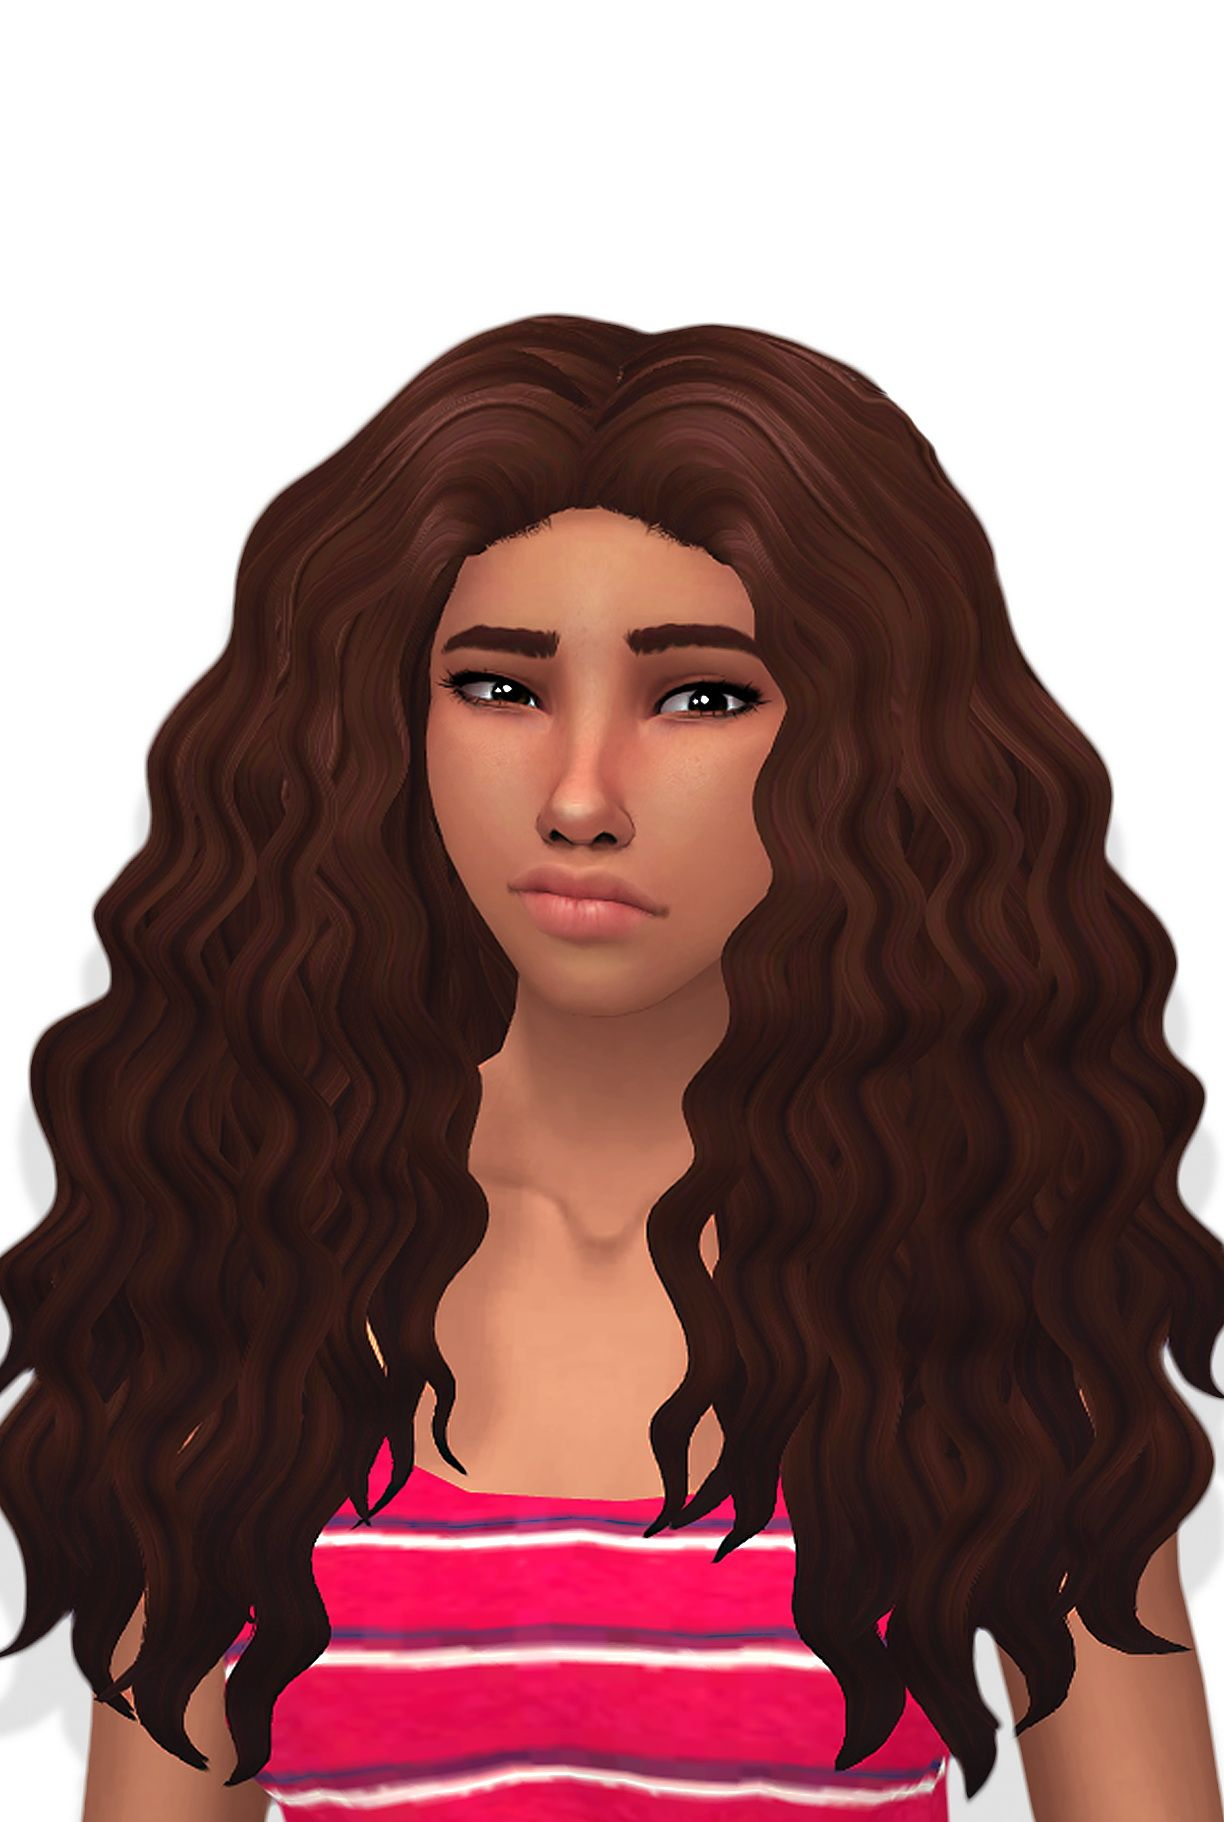 Butterscotchsims: Sintiklia Diva clayified hair - Sims 4 Hairs - http://sims4hairs.com/butterscotchsims-sintiklia-diva-clayified-hair/